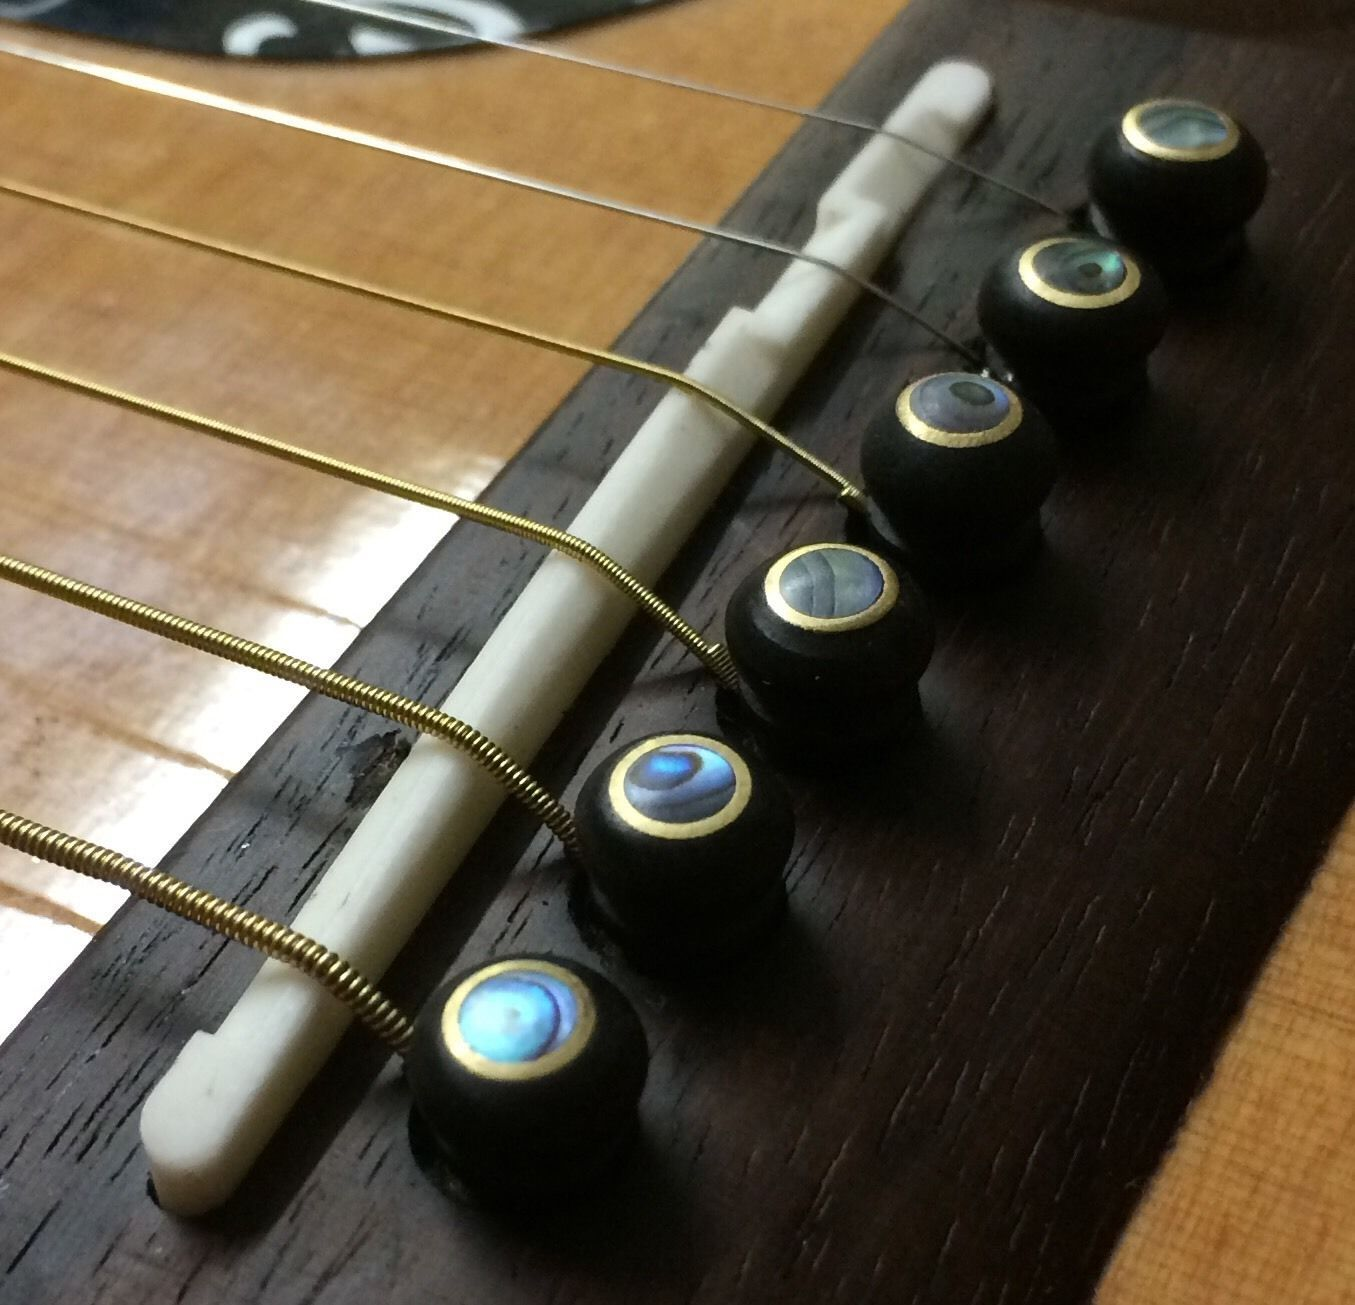 Snazzy Ebony Abalone Brass Guitar Bridge Pins Add The Finishing Touch To You Acoustic Guitar Upgrades Acoustic Guitar Strings Acoustic Guitar Guitar